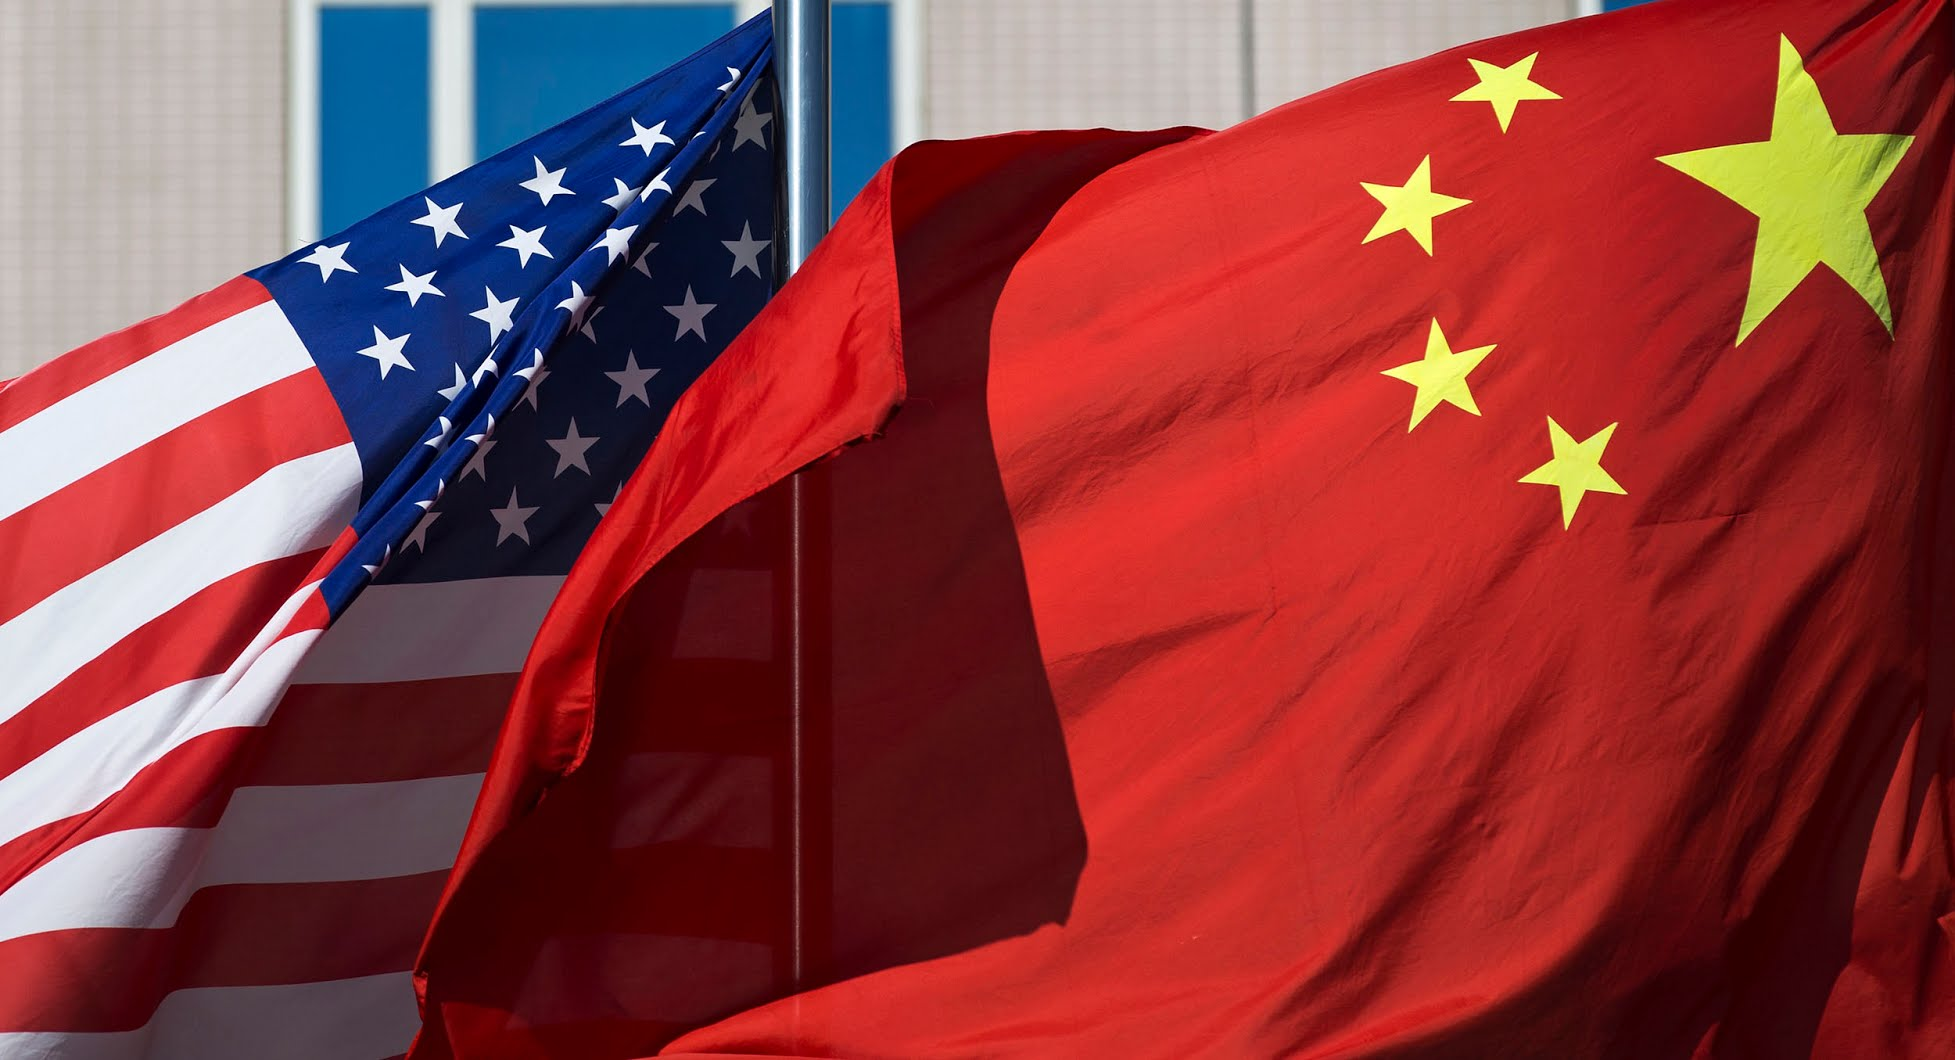 China is engaged in economic Blitzkrieg to surpass US as world's superpower, US Attorney General alleges